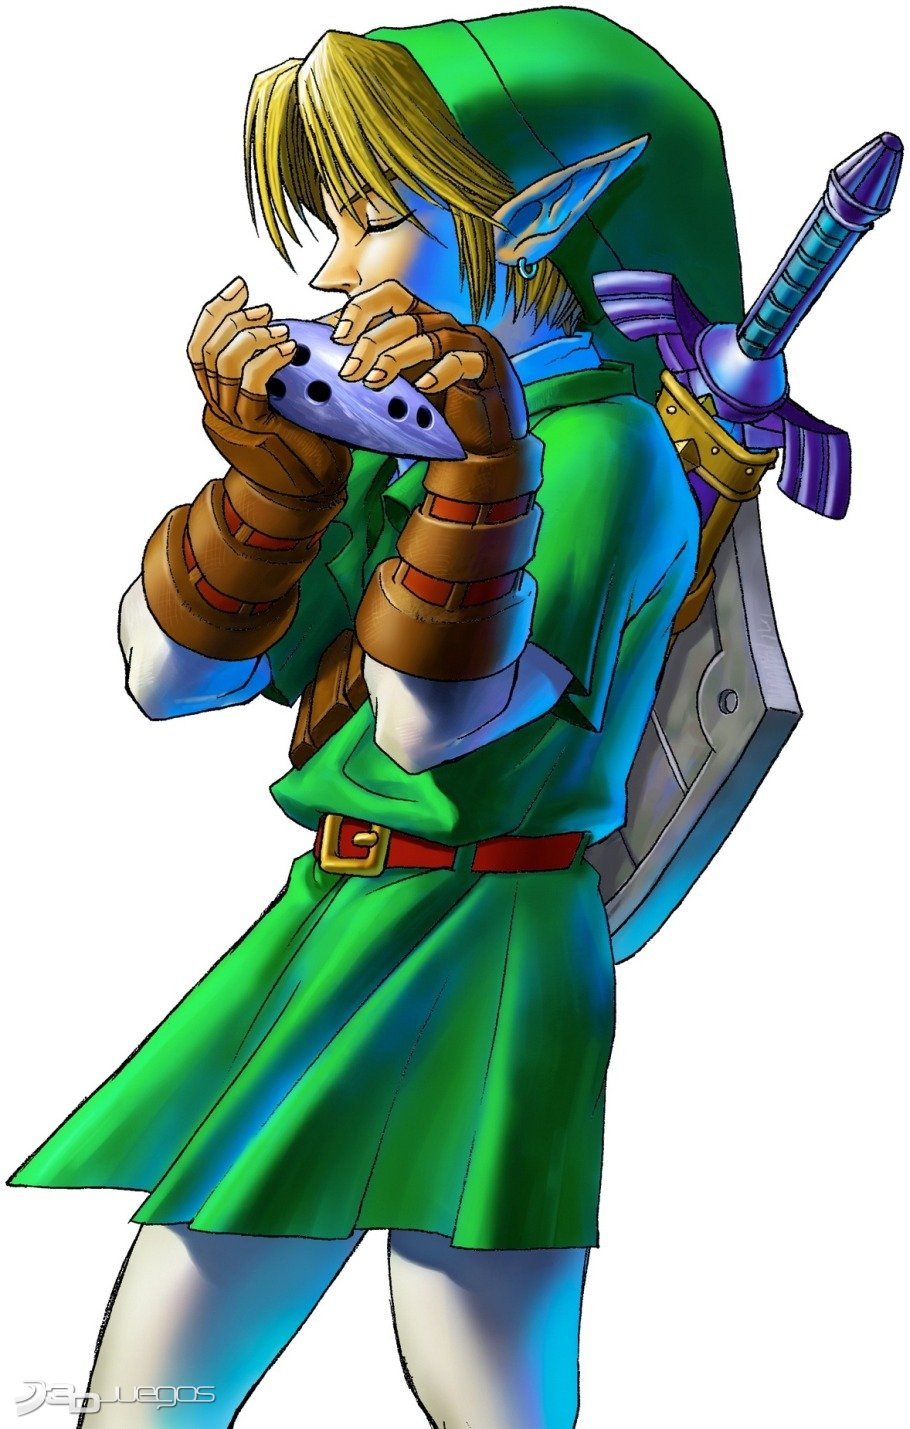 Imagen 24 de 124 de The Legend of Zelda: Ocarina of Time (3DS